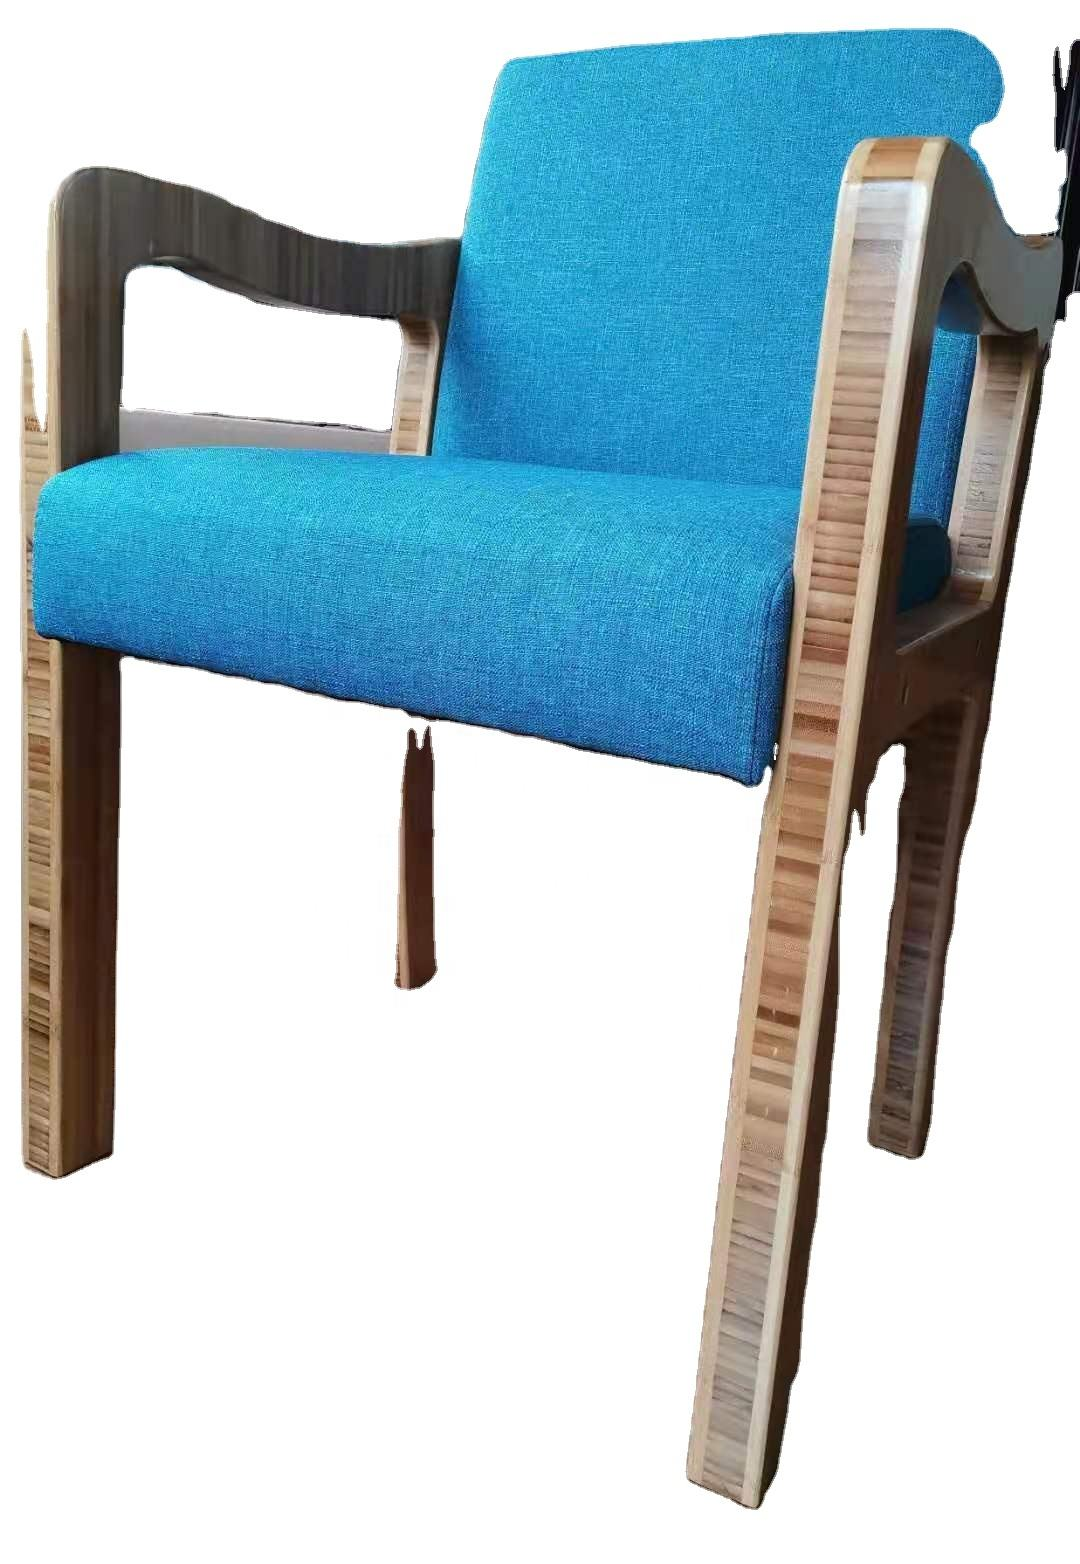 Pure Natural Bamboo Made Simple Dafang Custom Bamboo Single Sofa Chair For Office Home